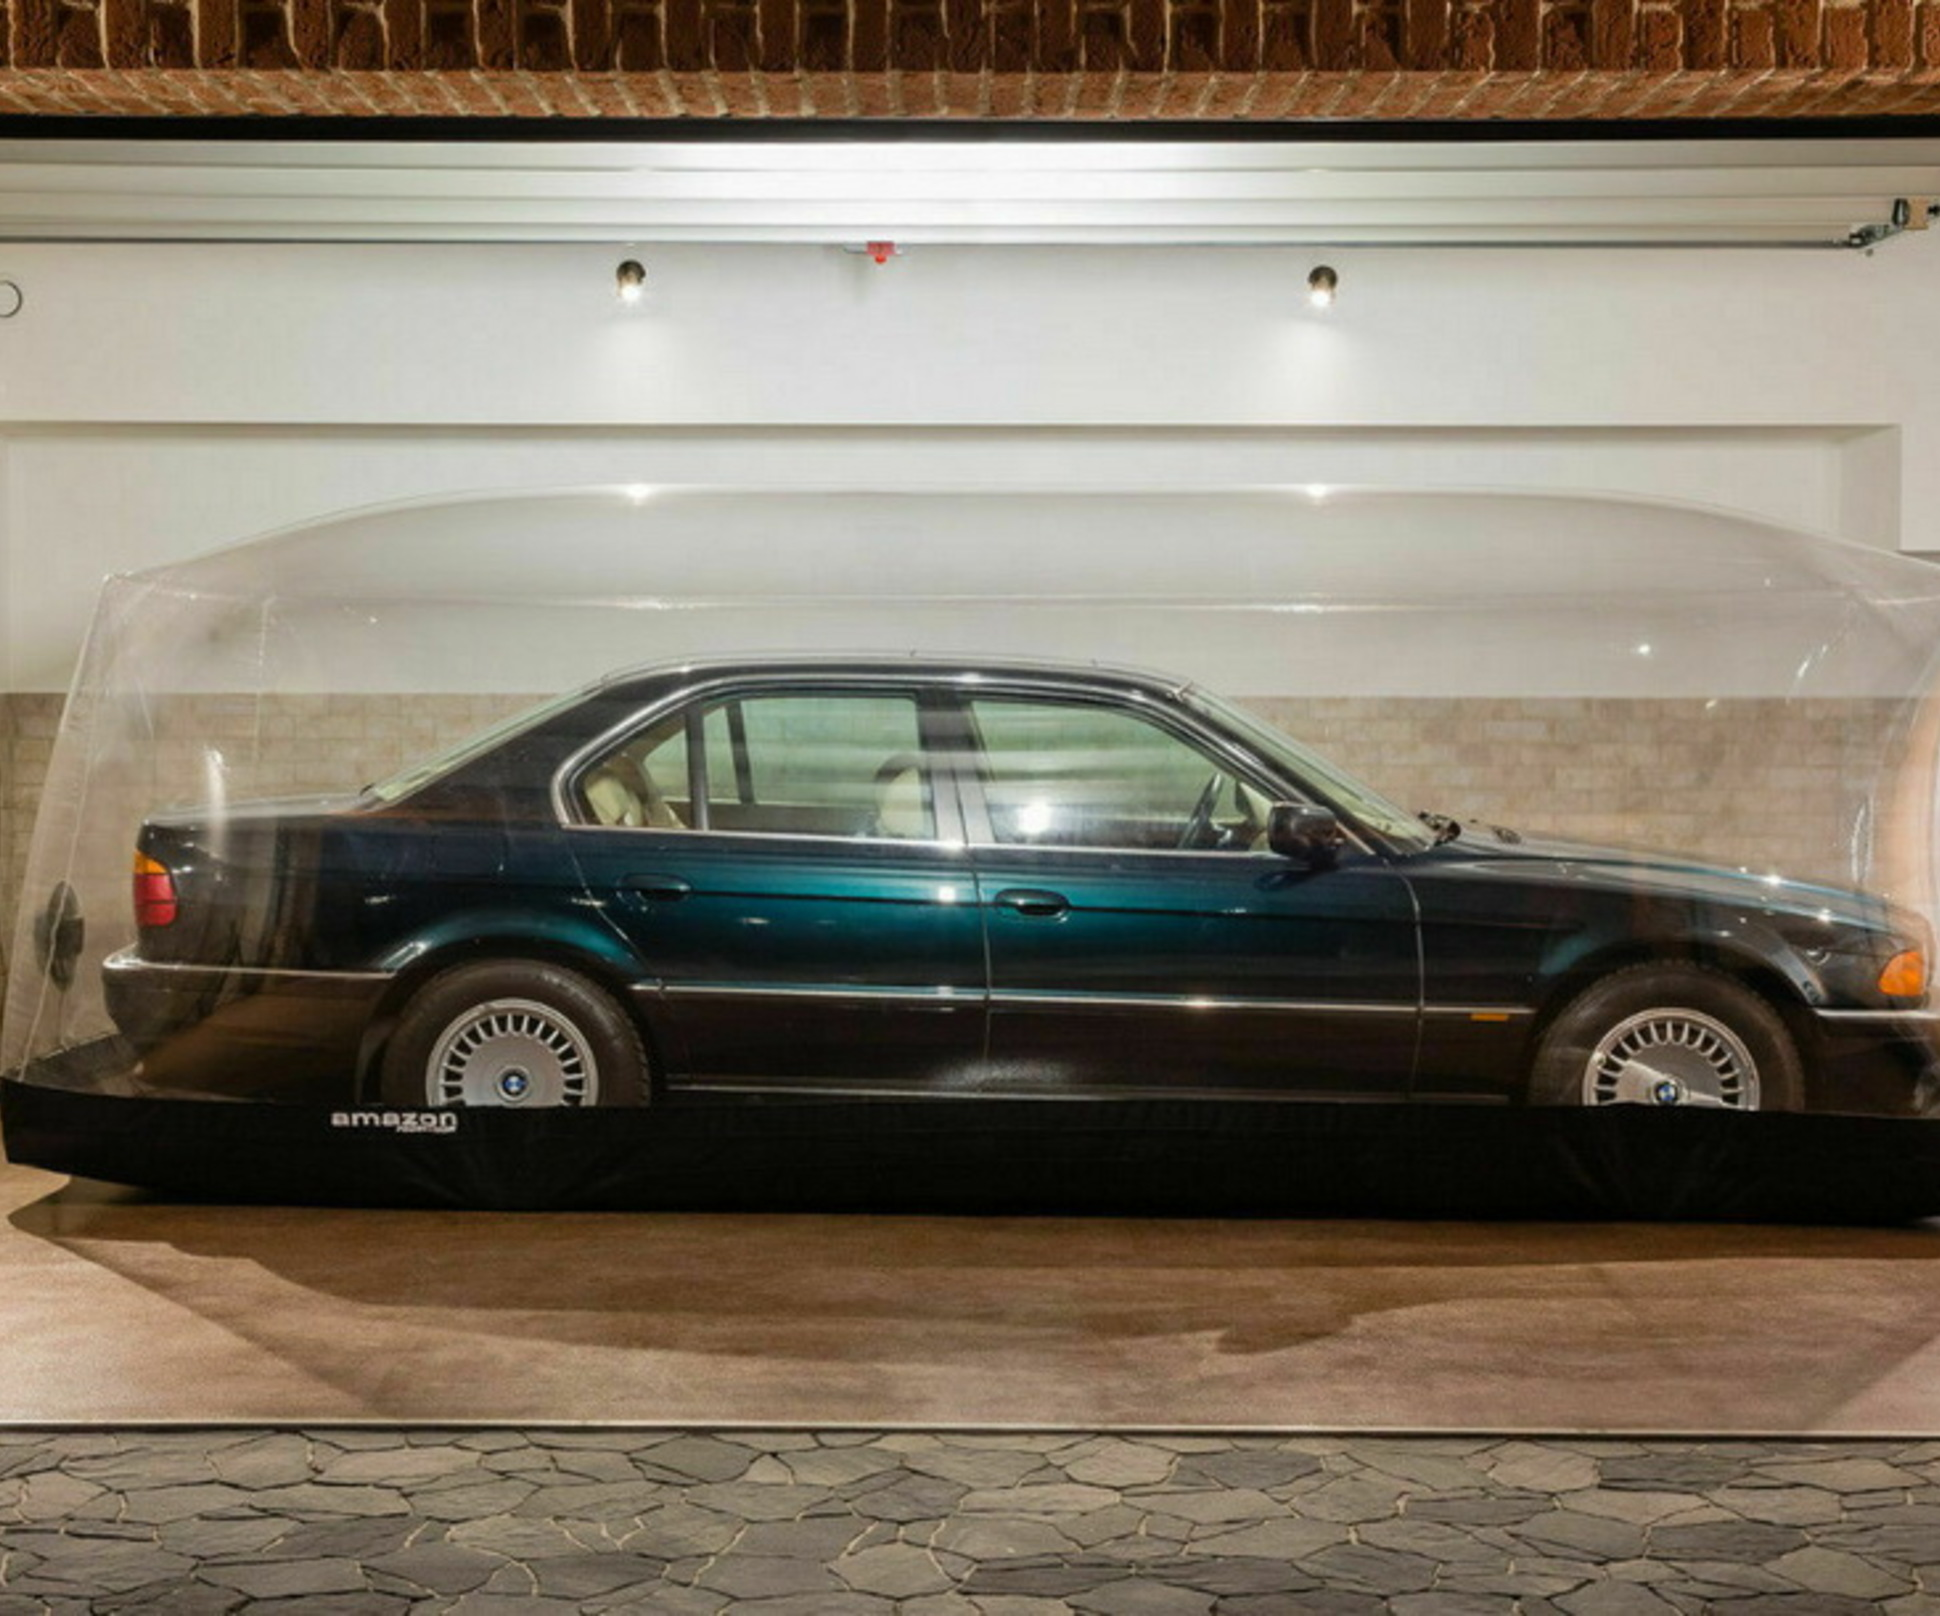 An eBay ad has been posted for this unique BMW 7 Series sedan, which its owner purchased in 1997 and almost immediately put into a carefully ventilated time capsule.